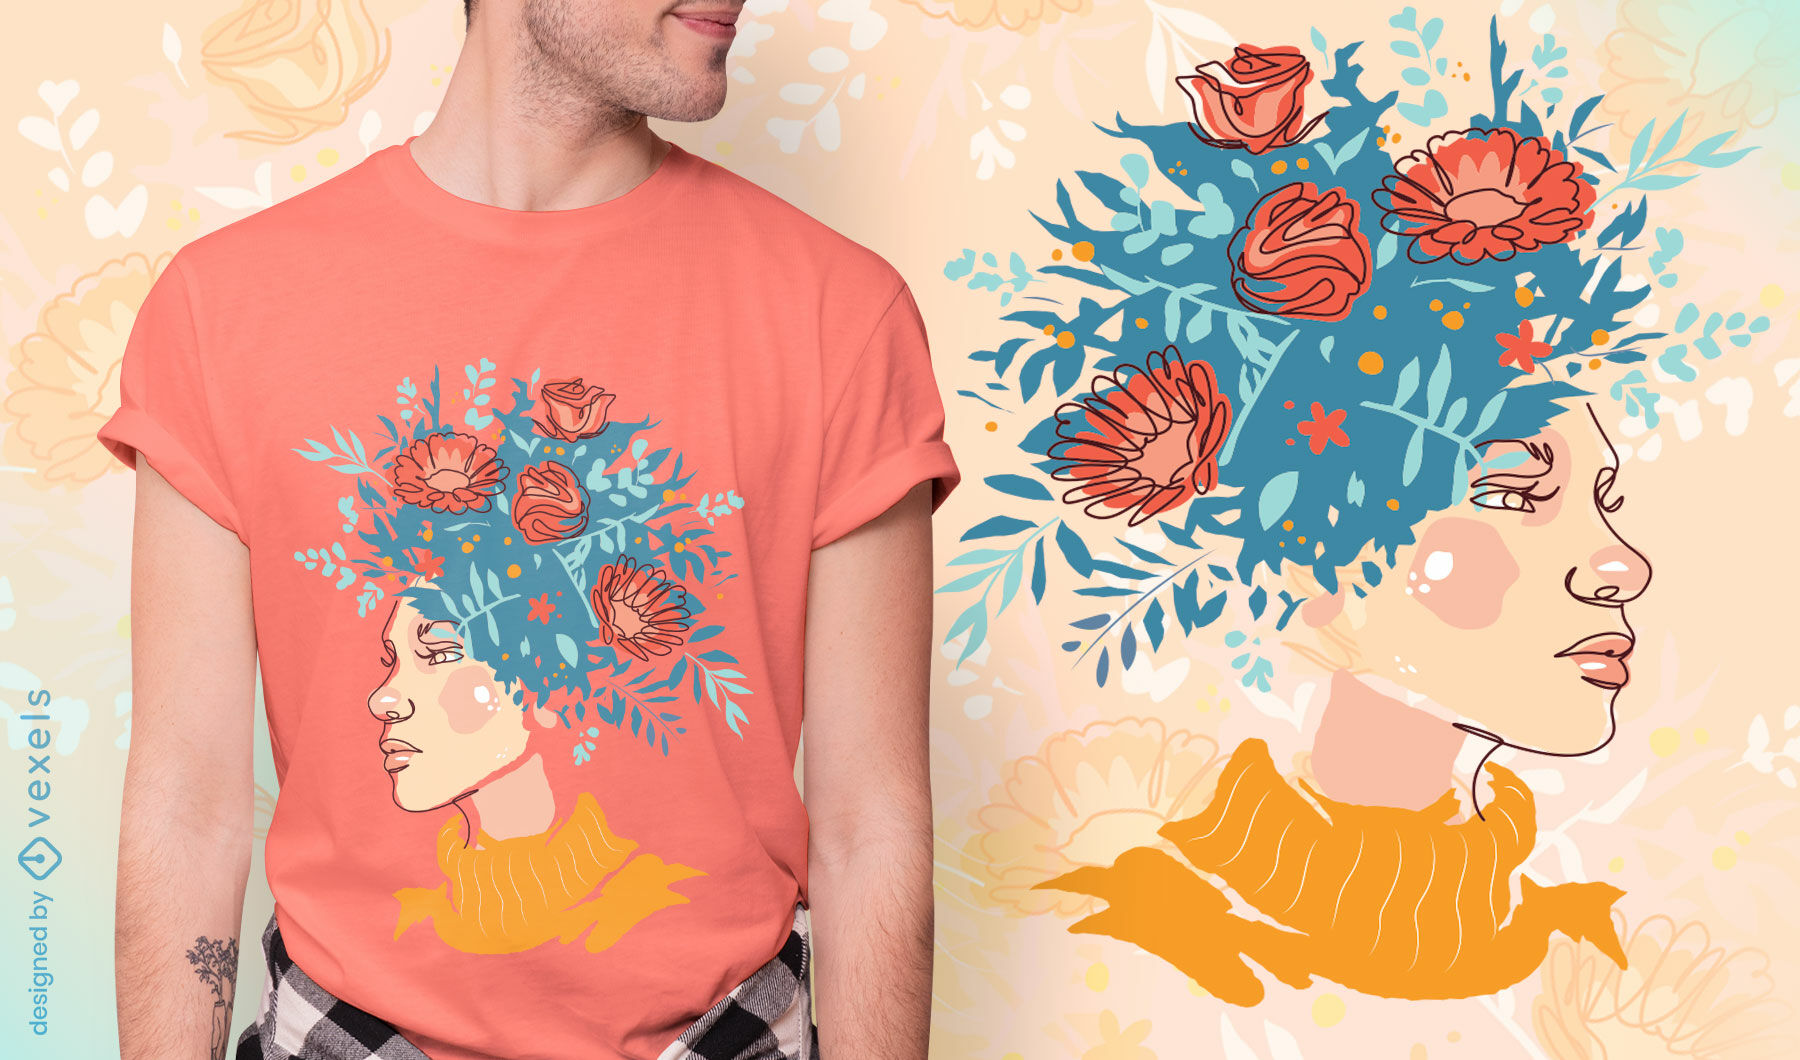 Girl with flowers in hair t-shirt design